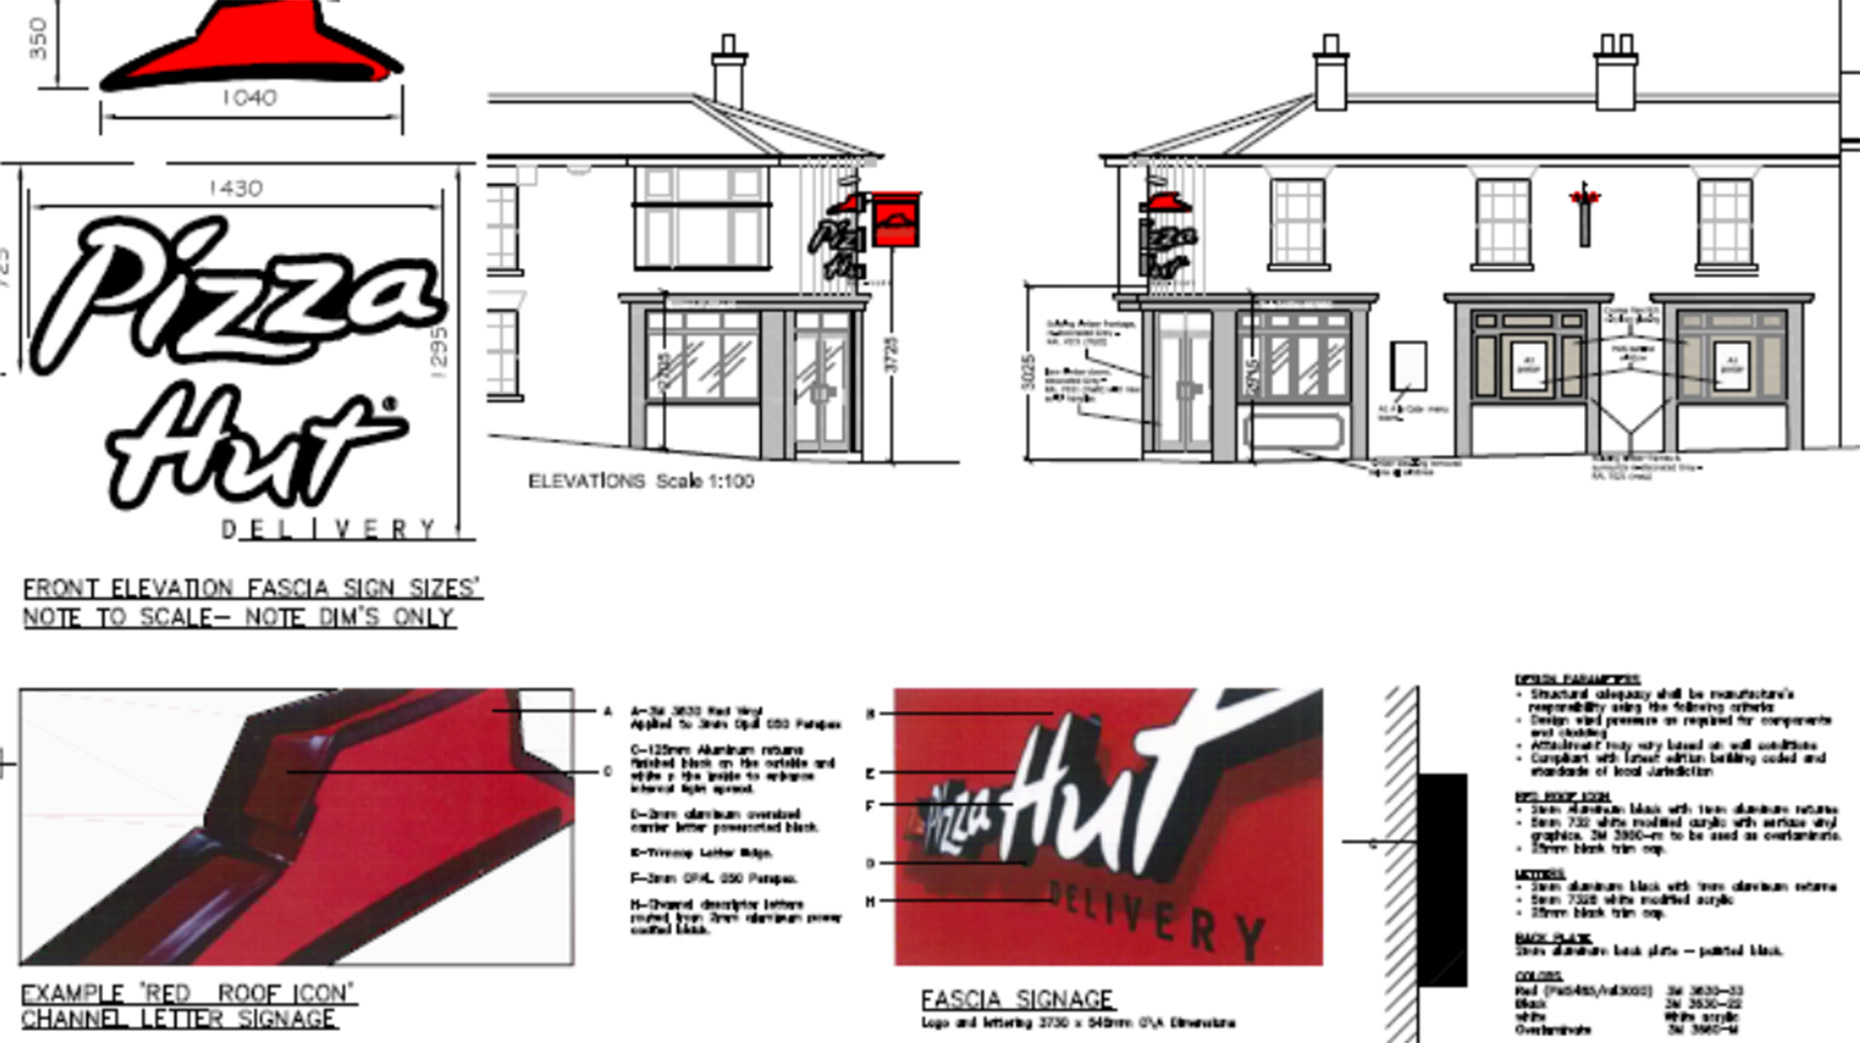 City Council Approves Pizza Hut Delivery On Site Of Former